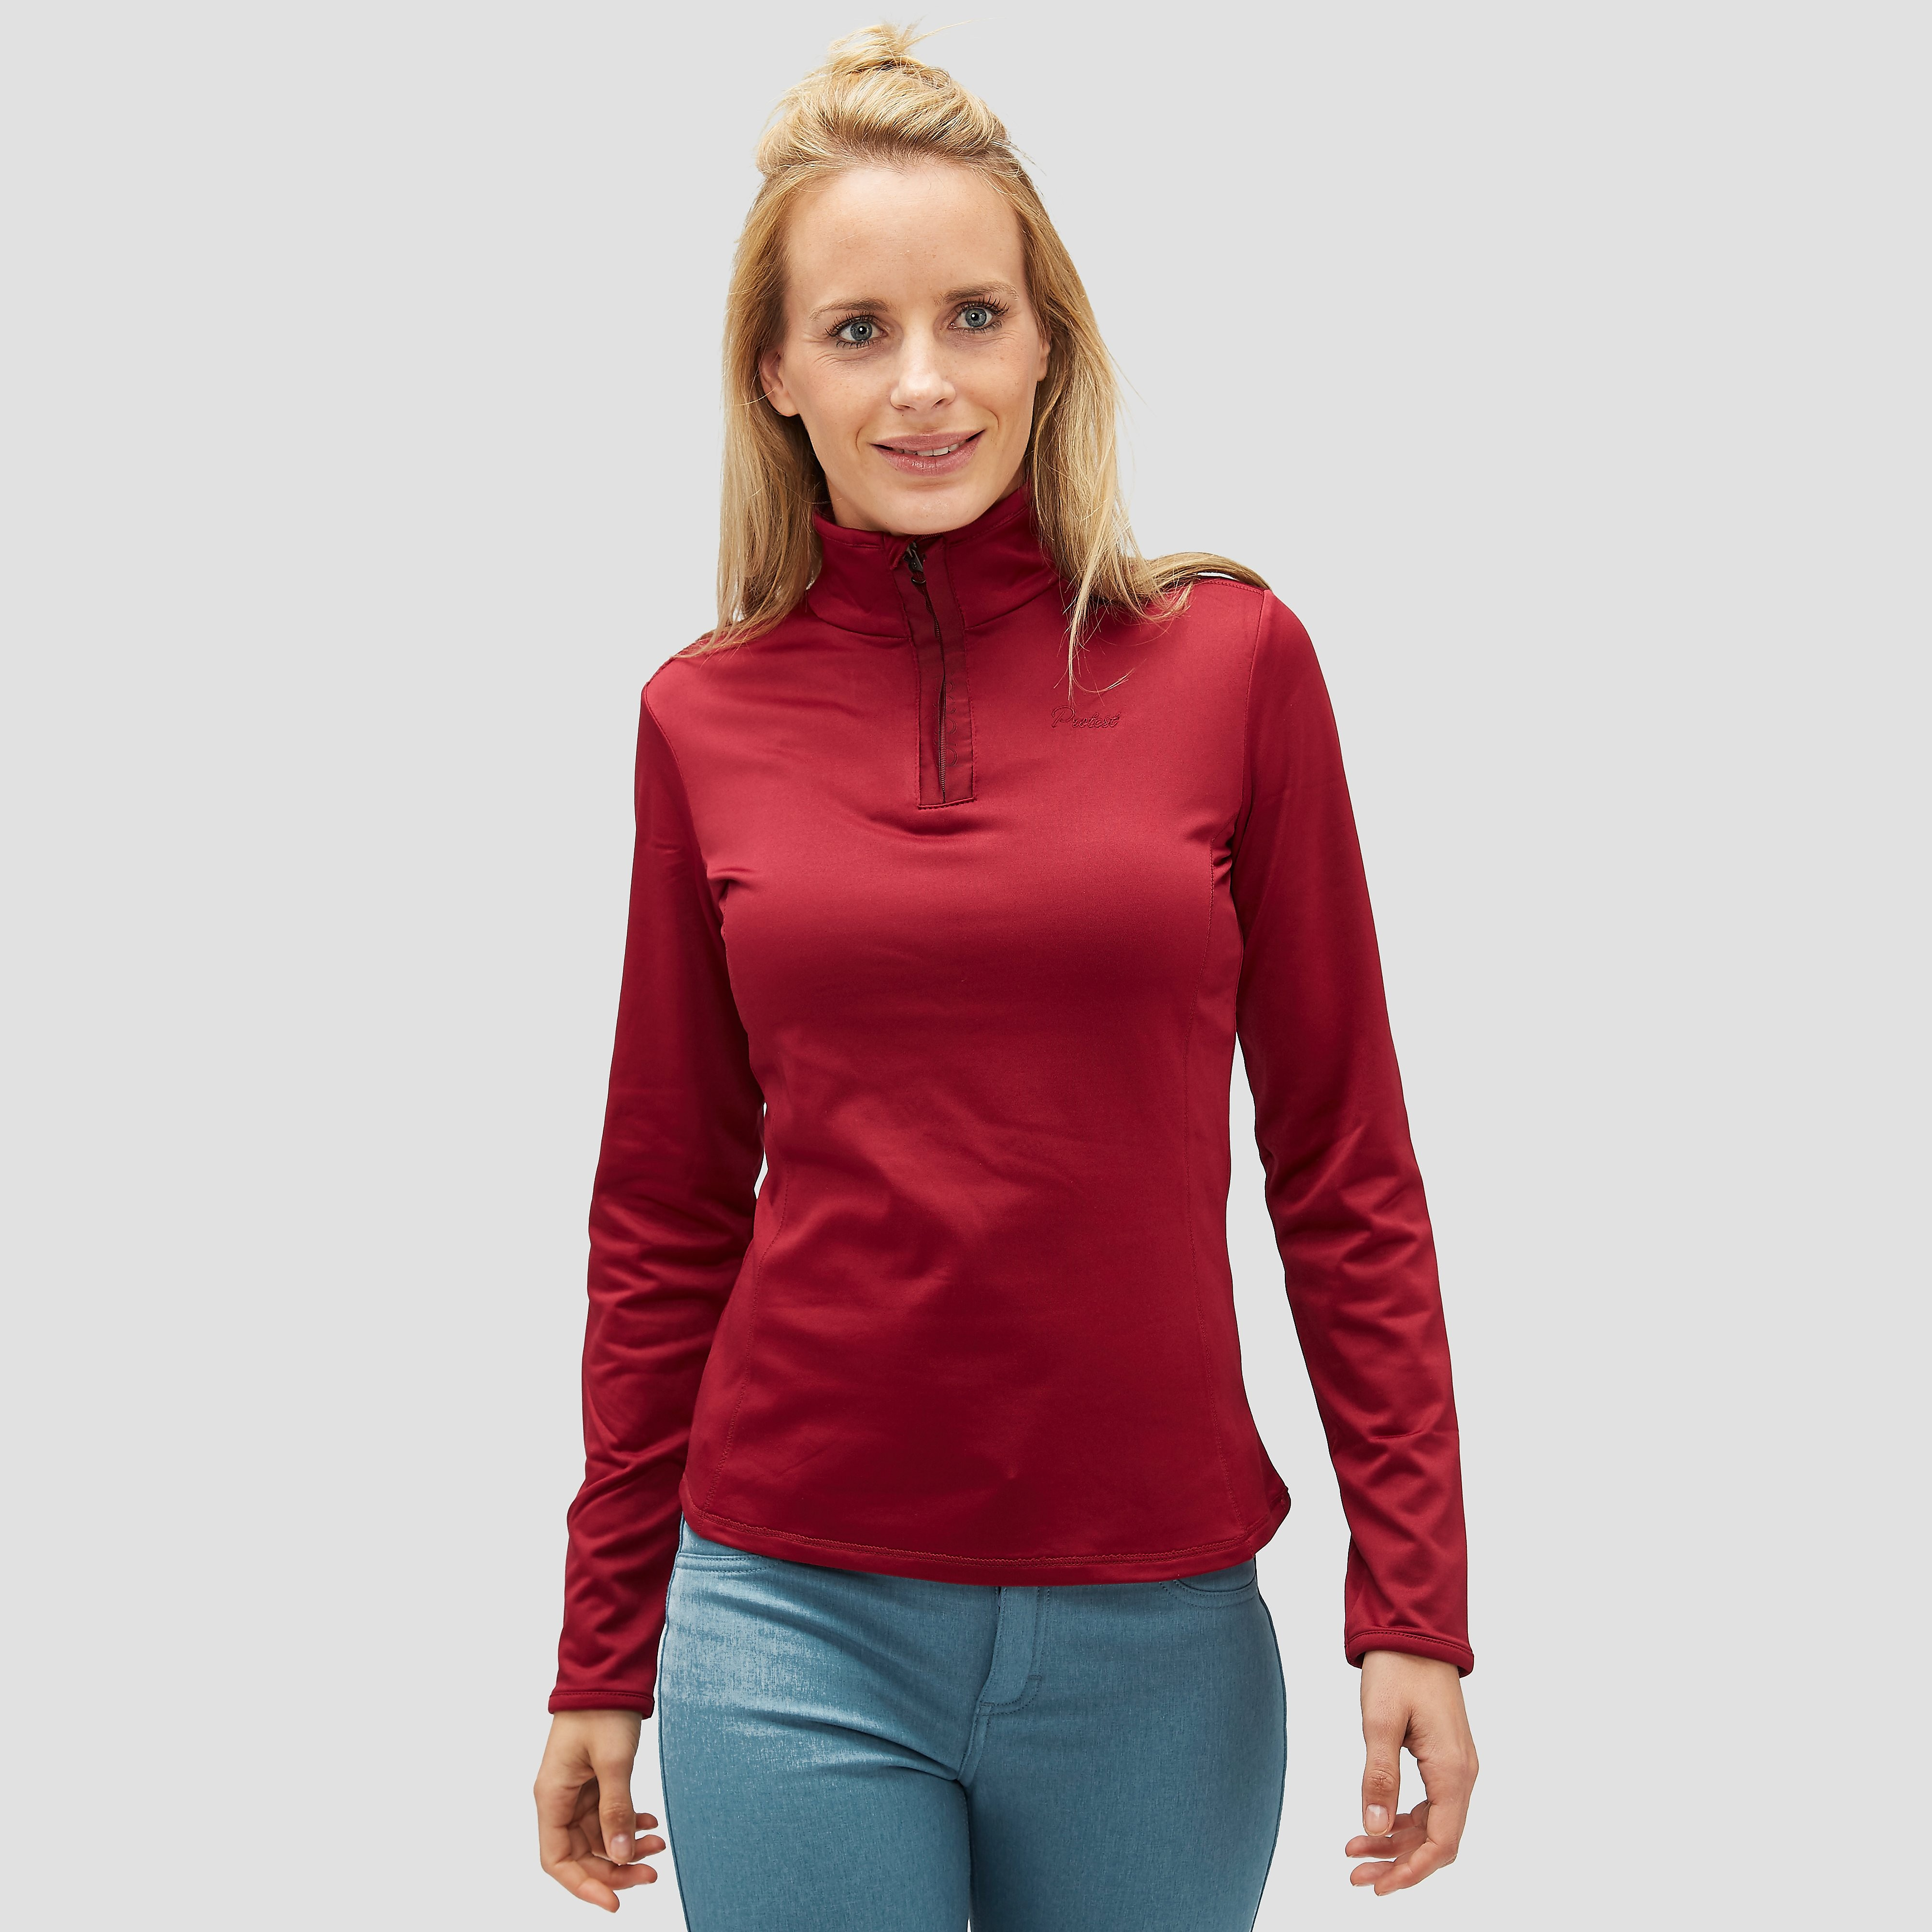 PROTEST FABRIZOY 1/4-RITS WINTER TOP ROOD DAMES